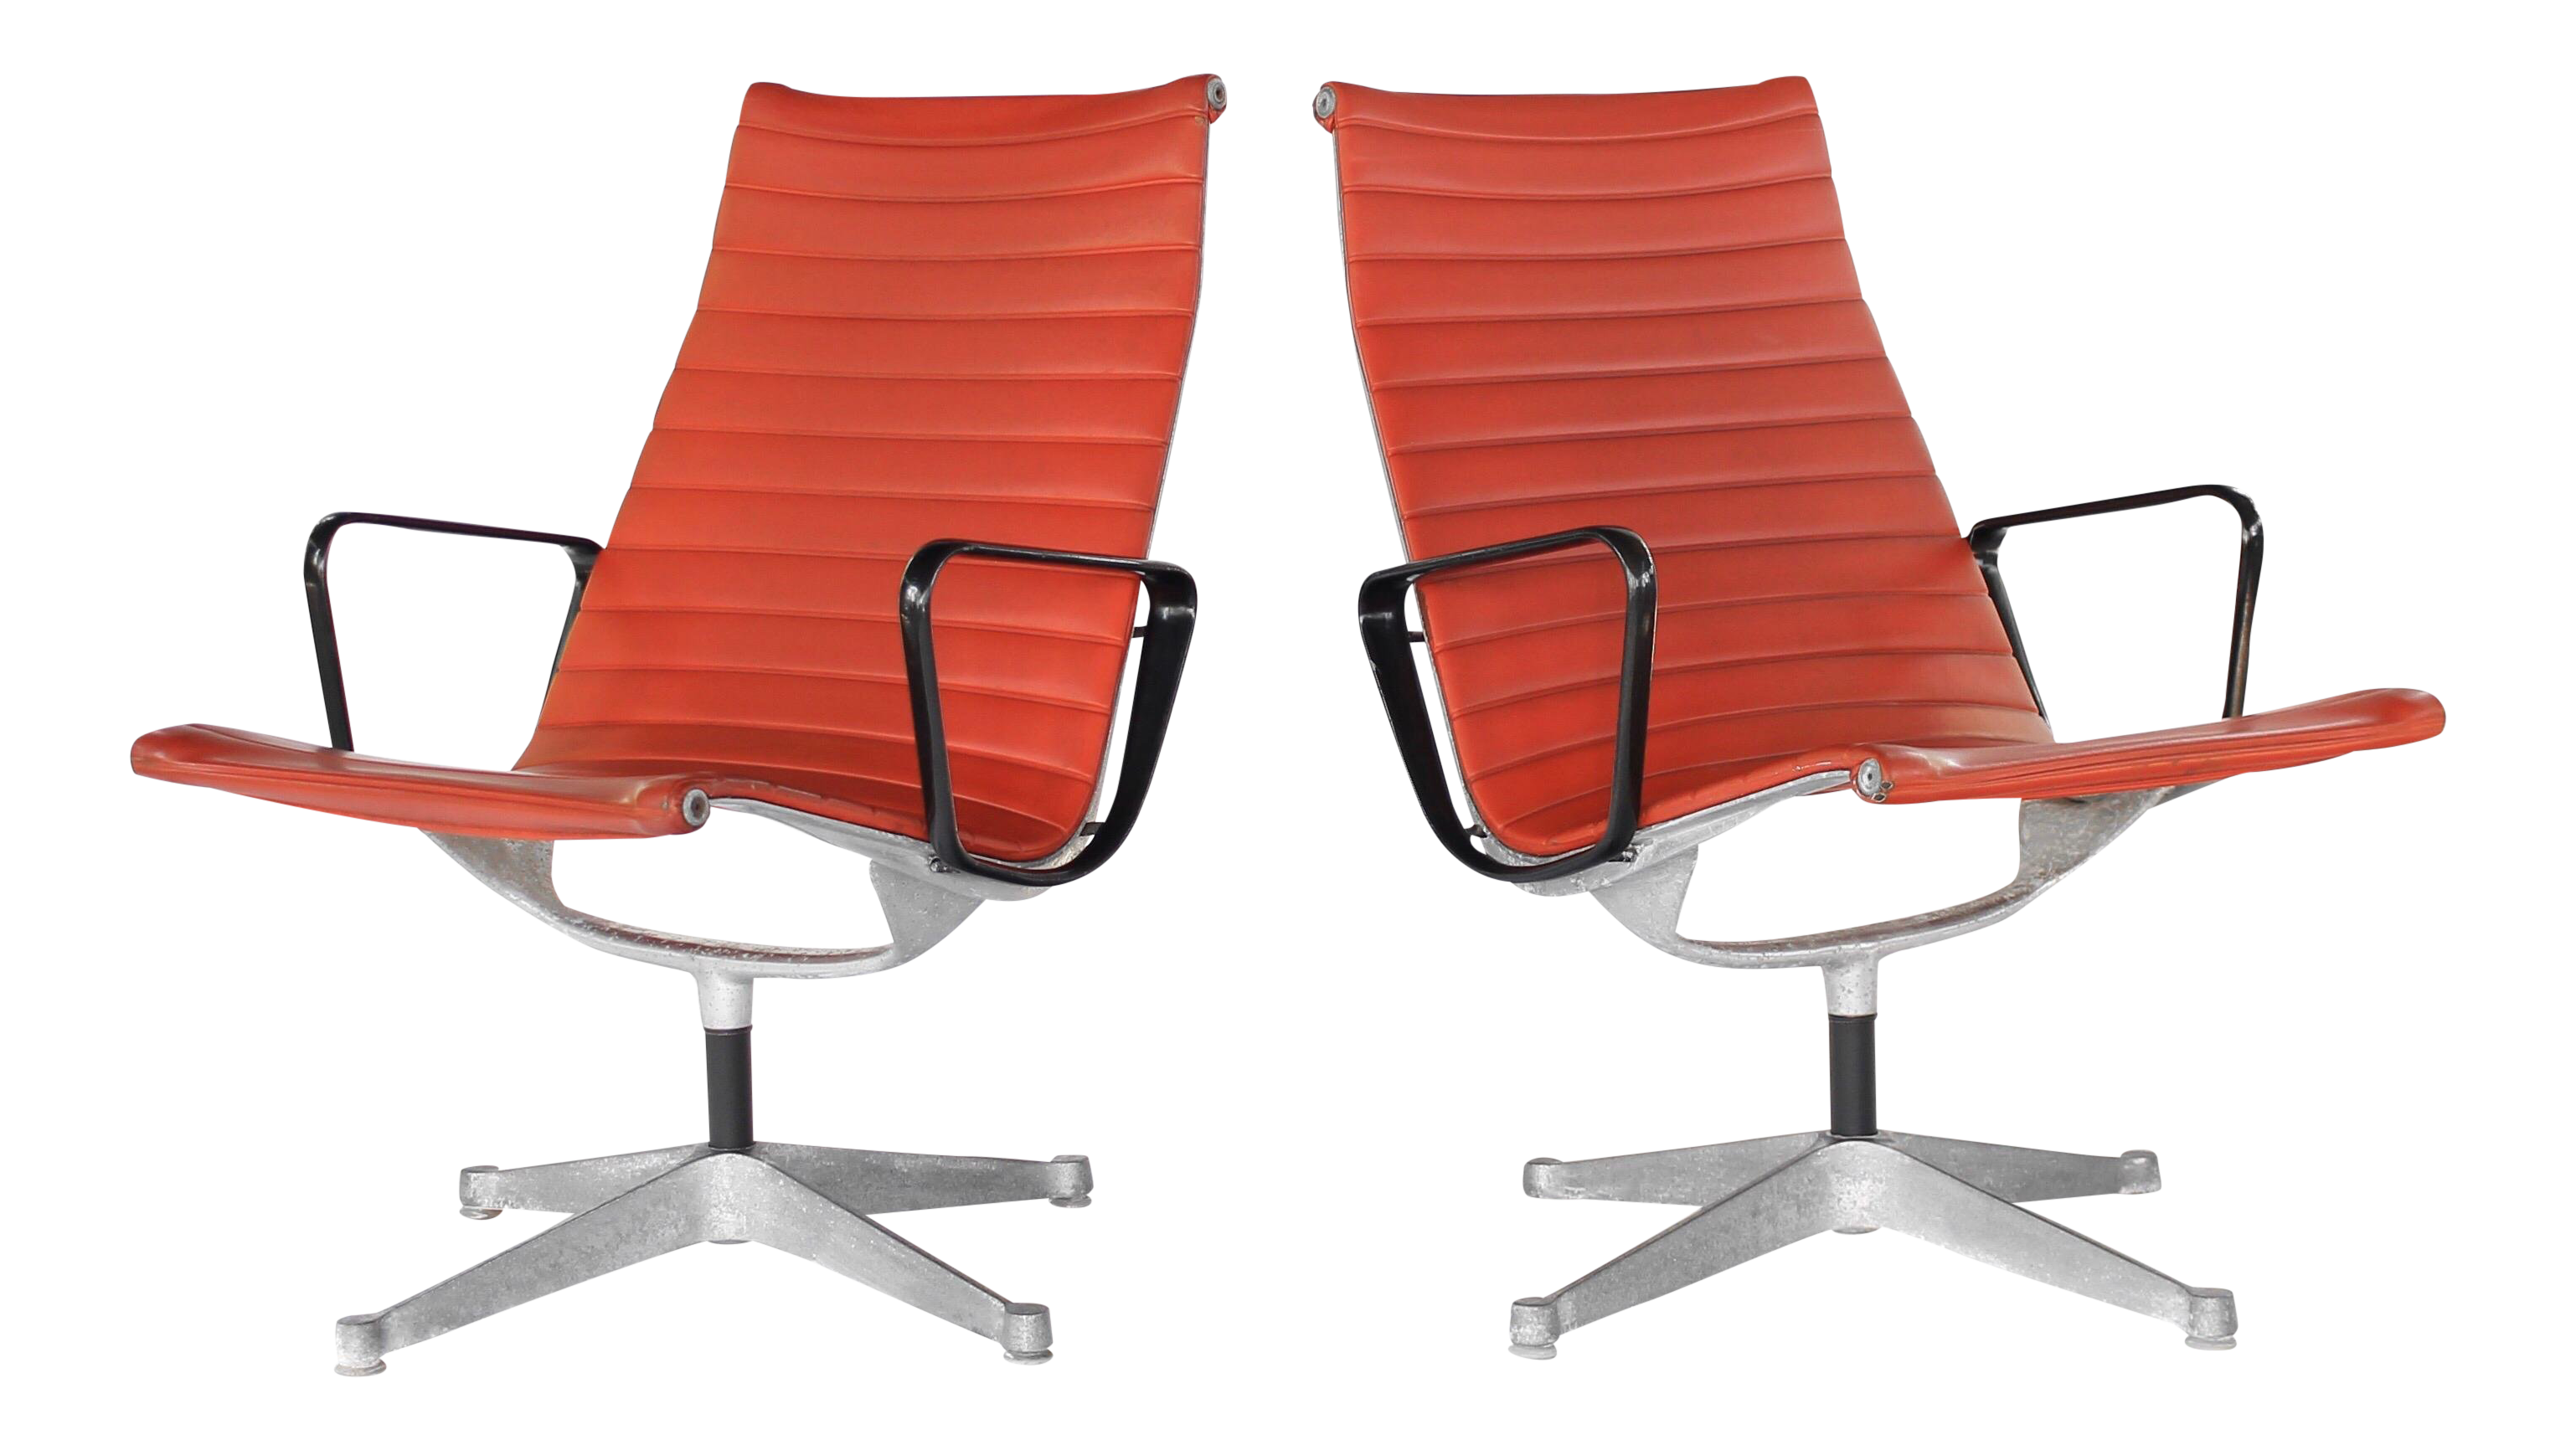 Mid century modern office furniture New 1960s Midcentury Modern Eames Group Aluminum Lounge Chairs For Herman Miller Pair Chairish Vintage Used Midcentury Modern Office Chairs Chairish